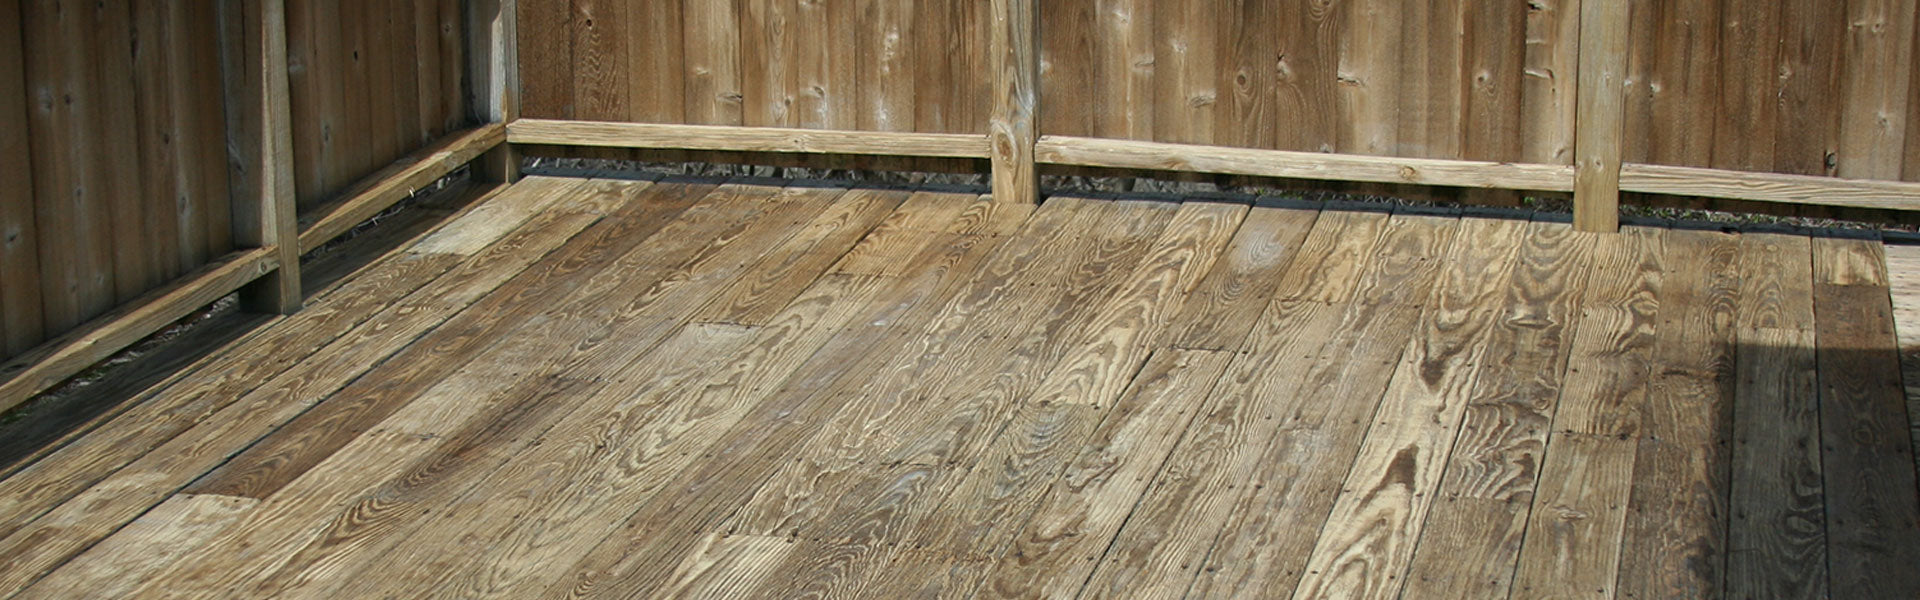 Washed Deck